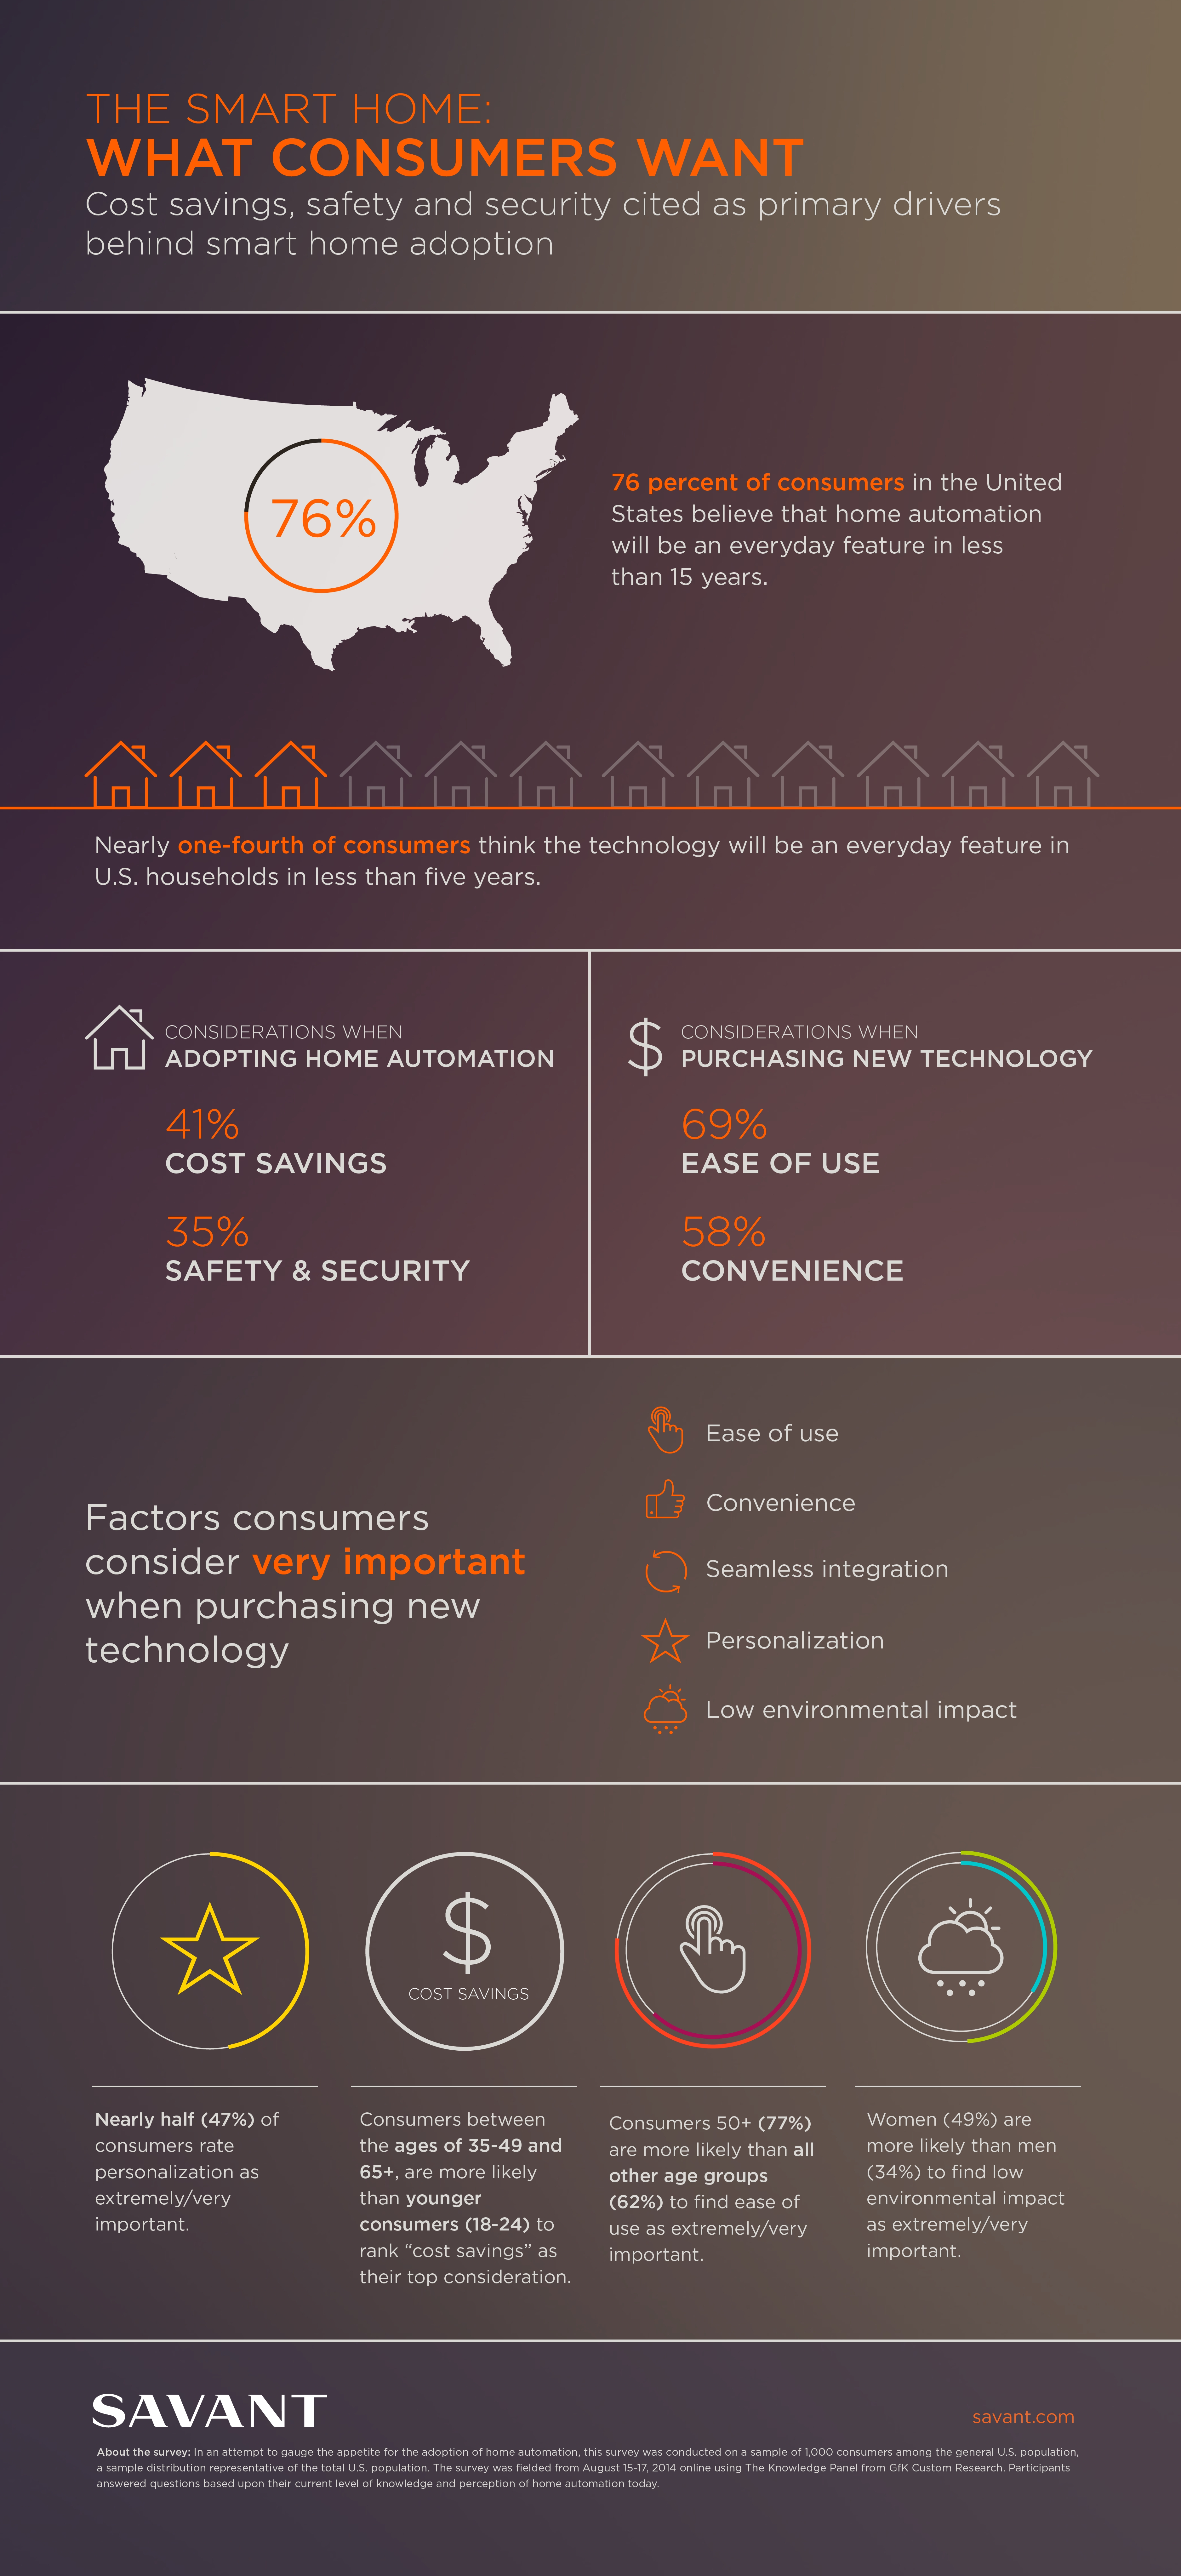 In a survey commissioned by Savant, the leading luxury smart home technology company, and conducted by GfK Custom Research, the data illustrates how soon consumers believe home automation will be an everyday feature, and revealed the primary drivers behind smart home adoption. (Graphic: Business Wire)